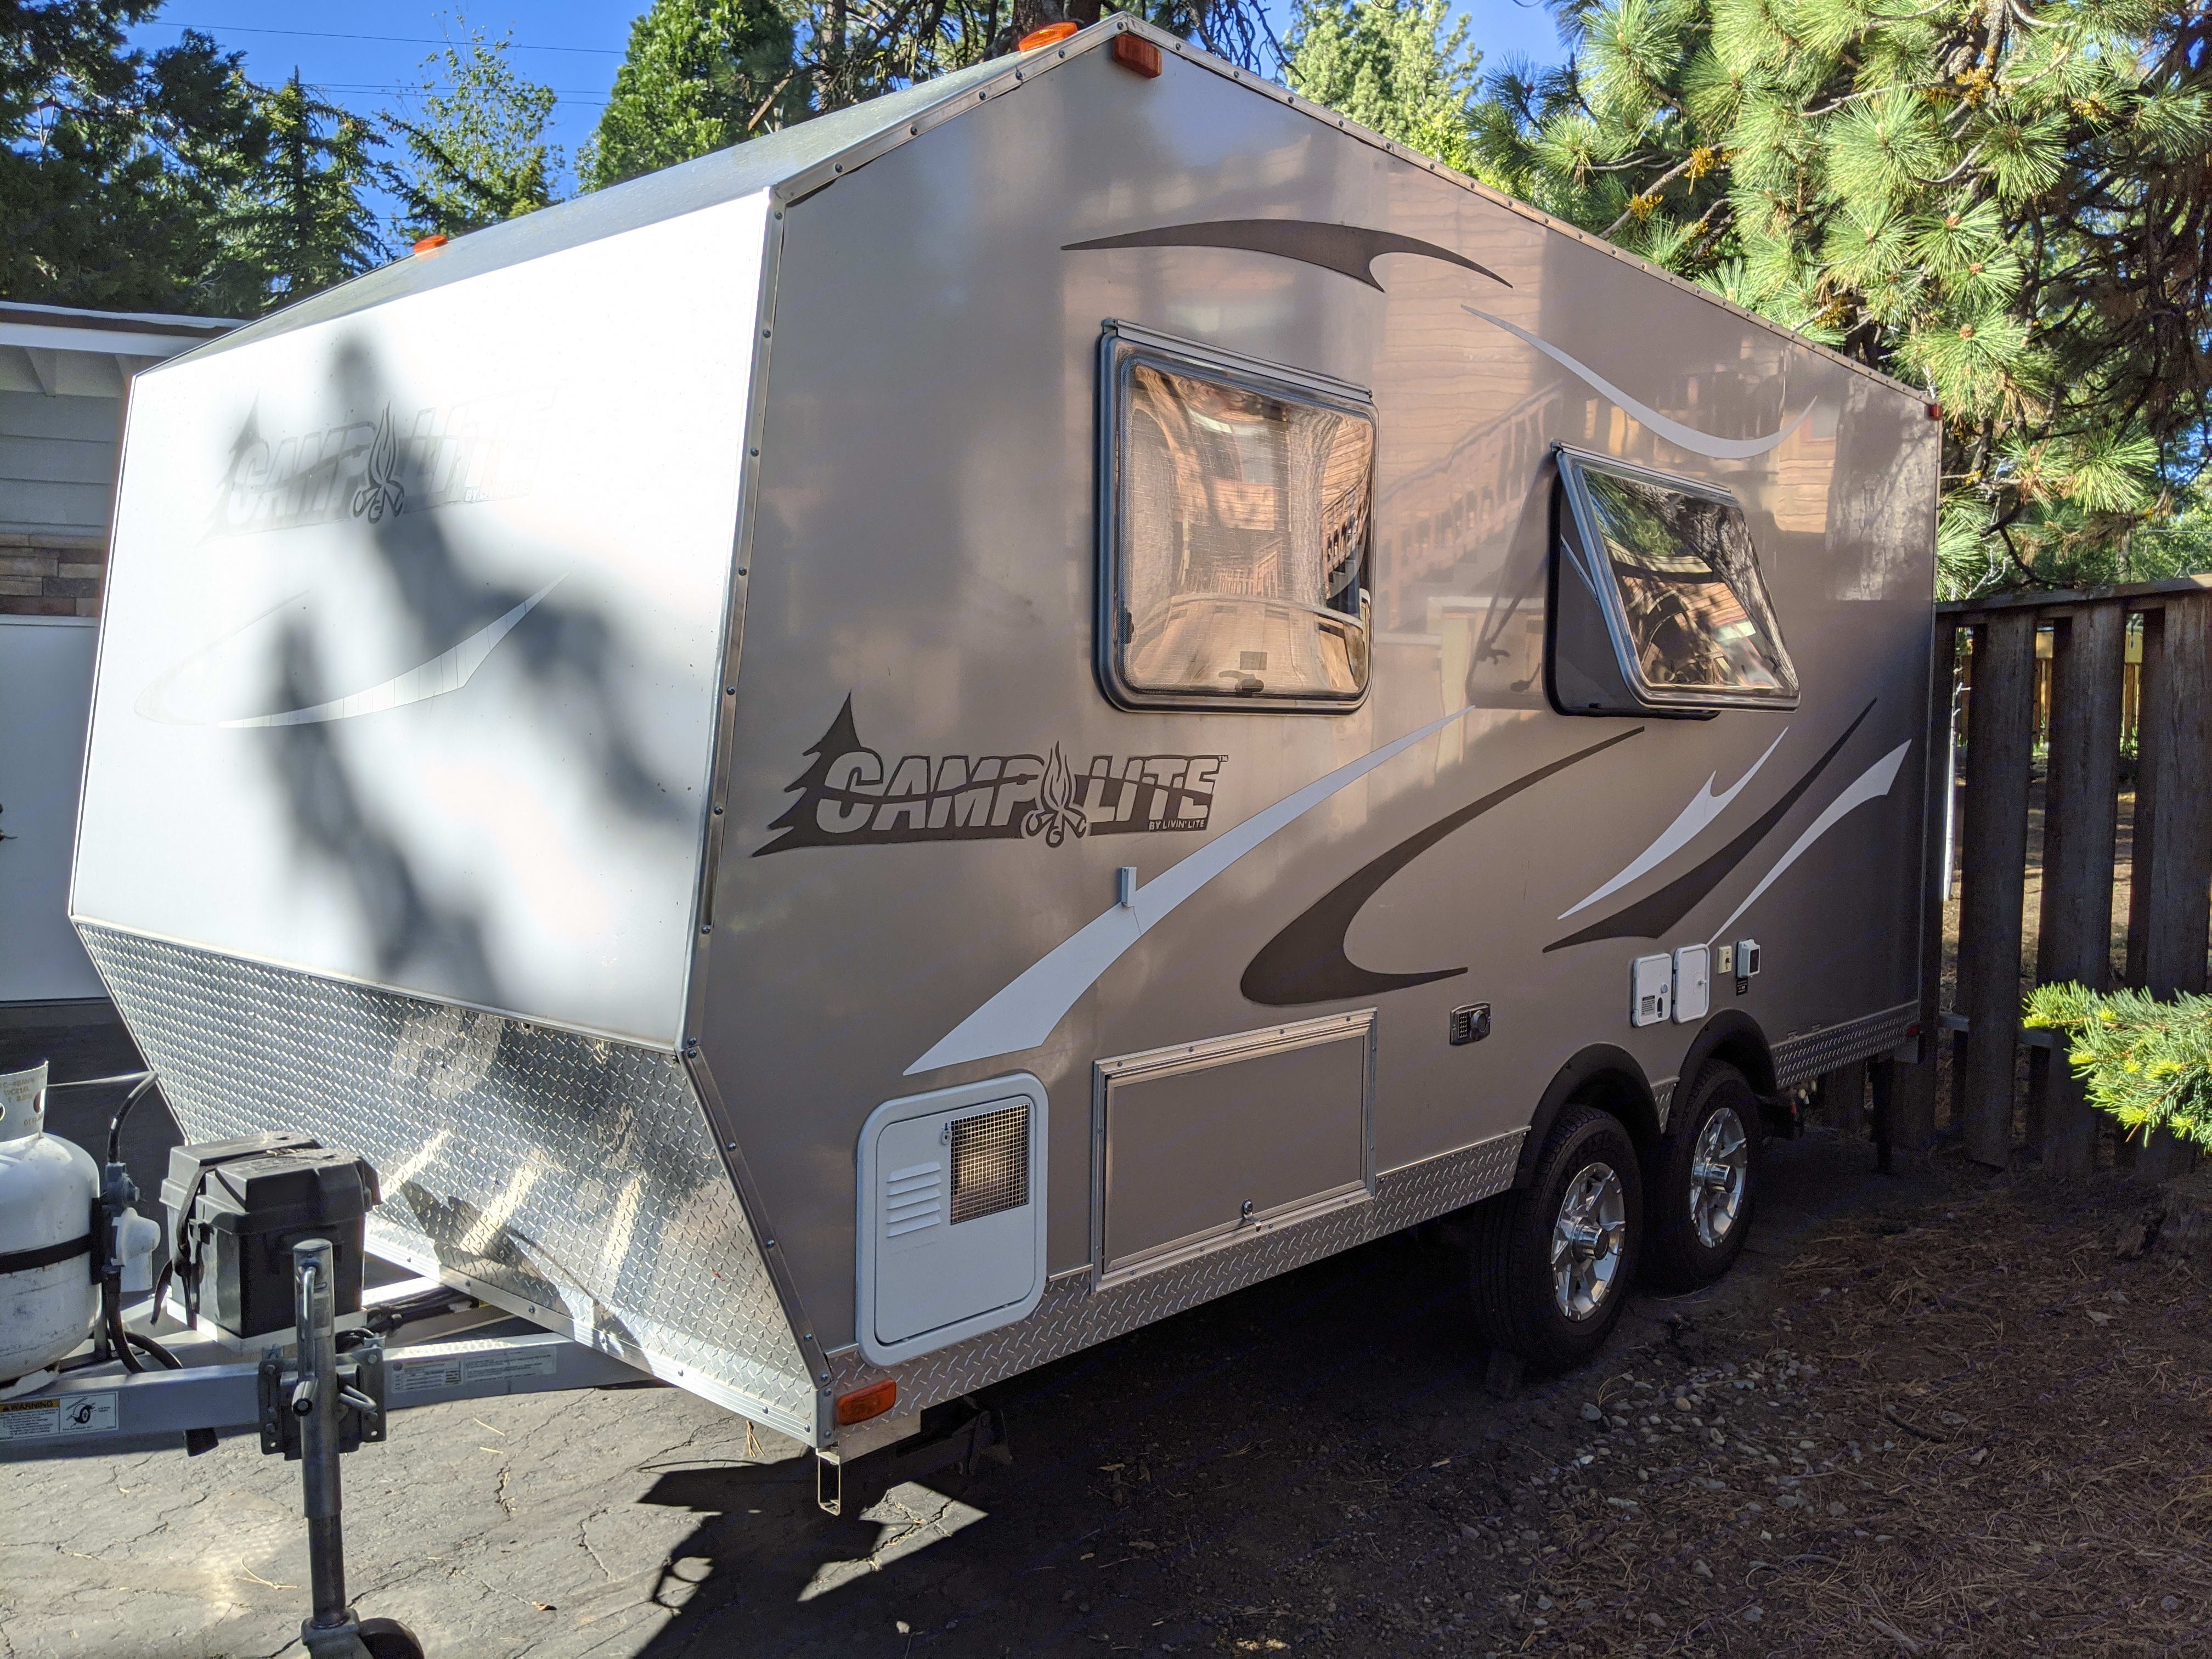 Front/side view with storage accessible from outside or inside the trailer. Livin' Lite Camplite 2012